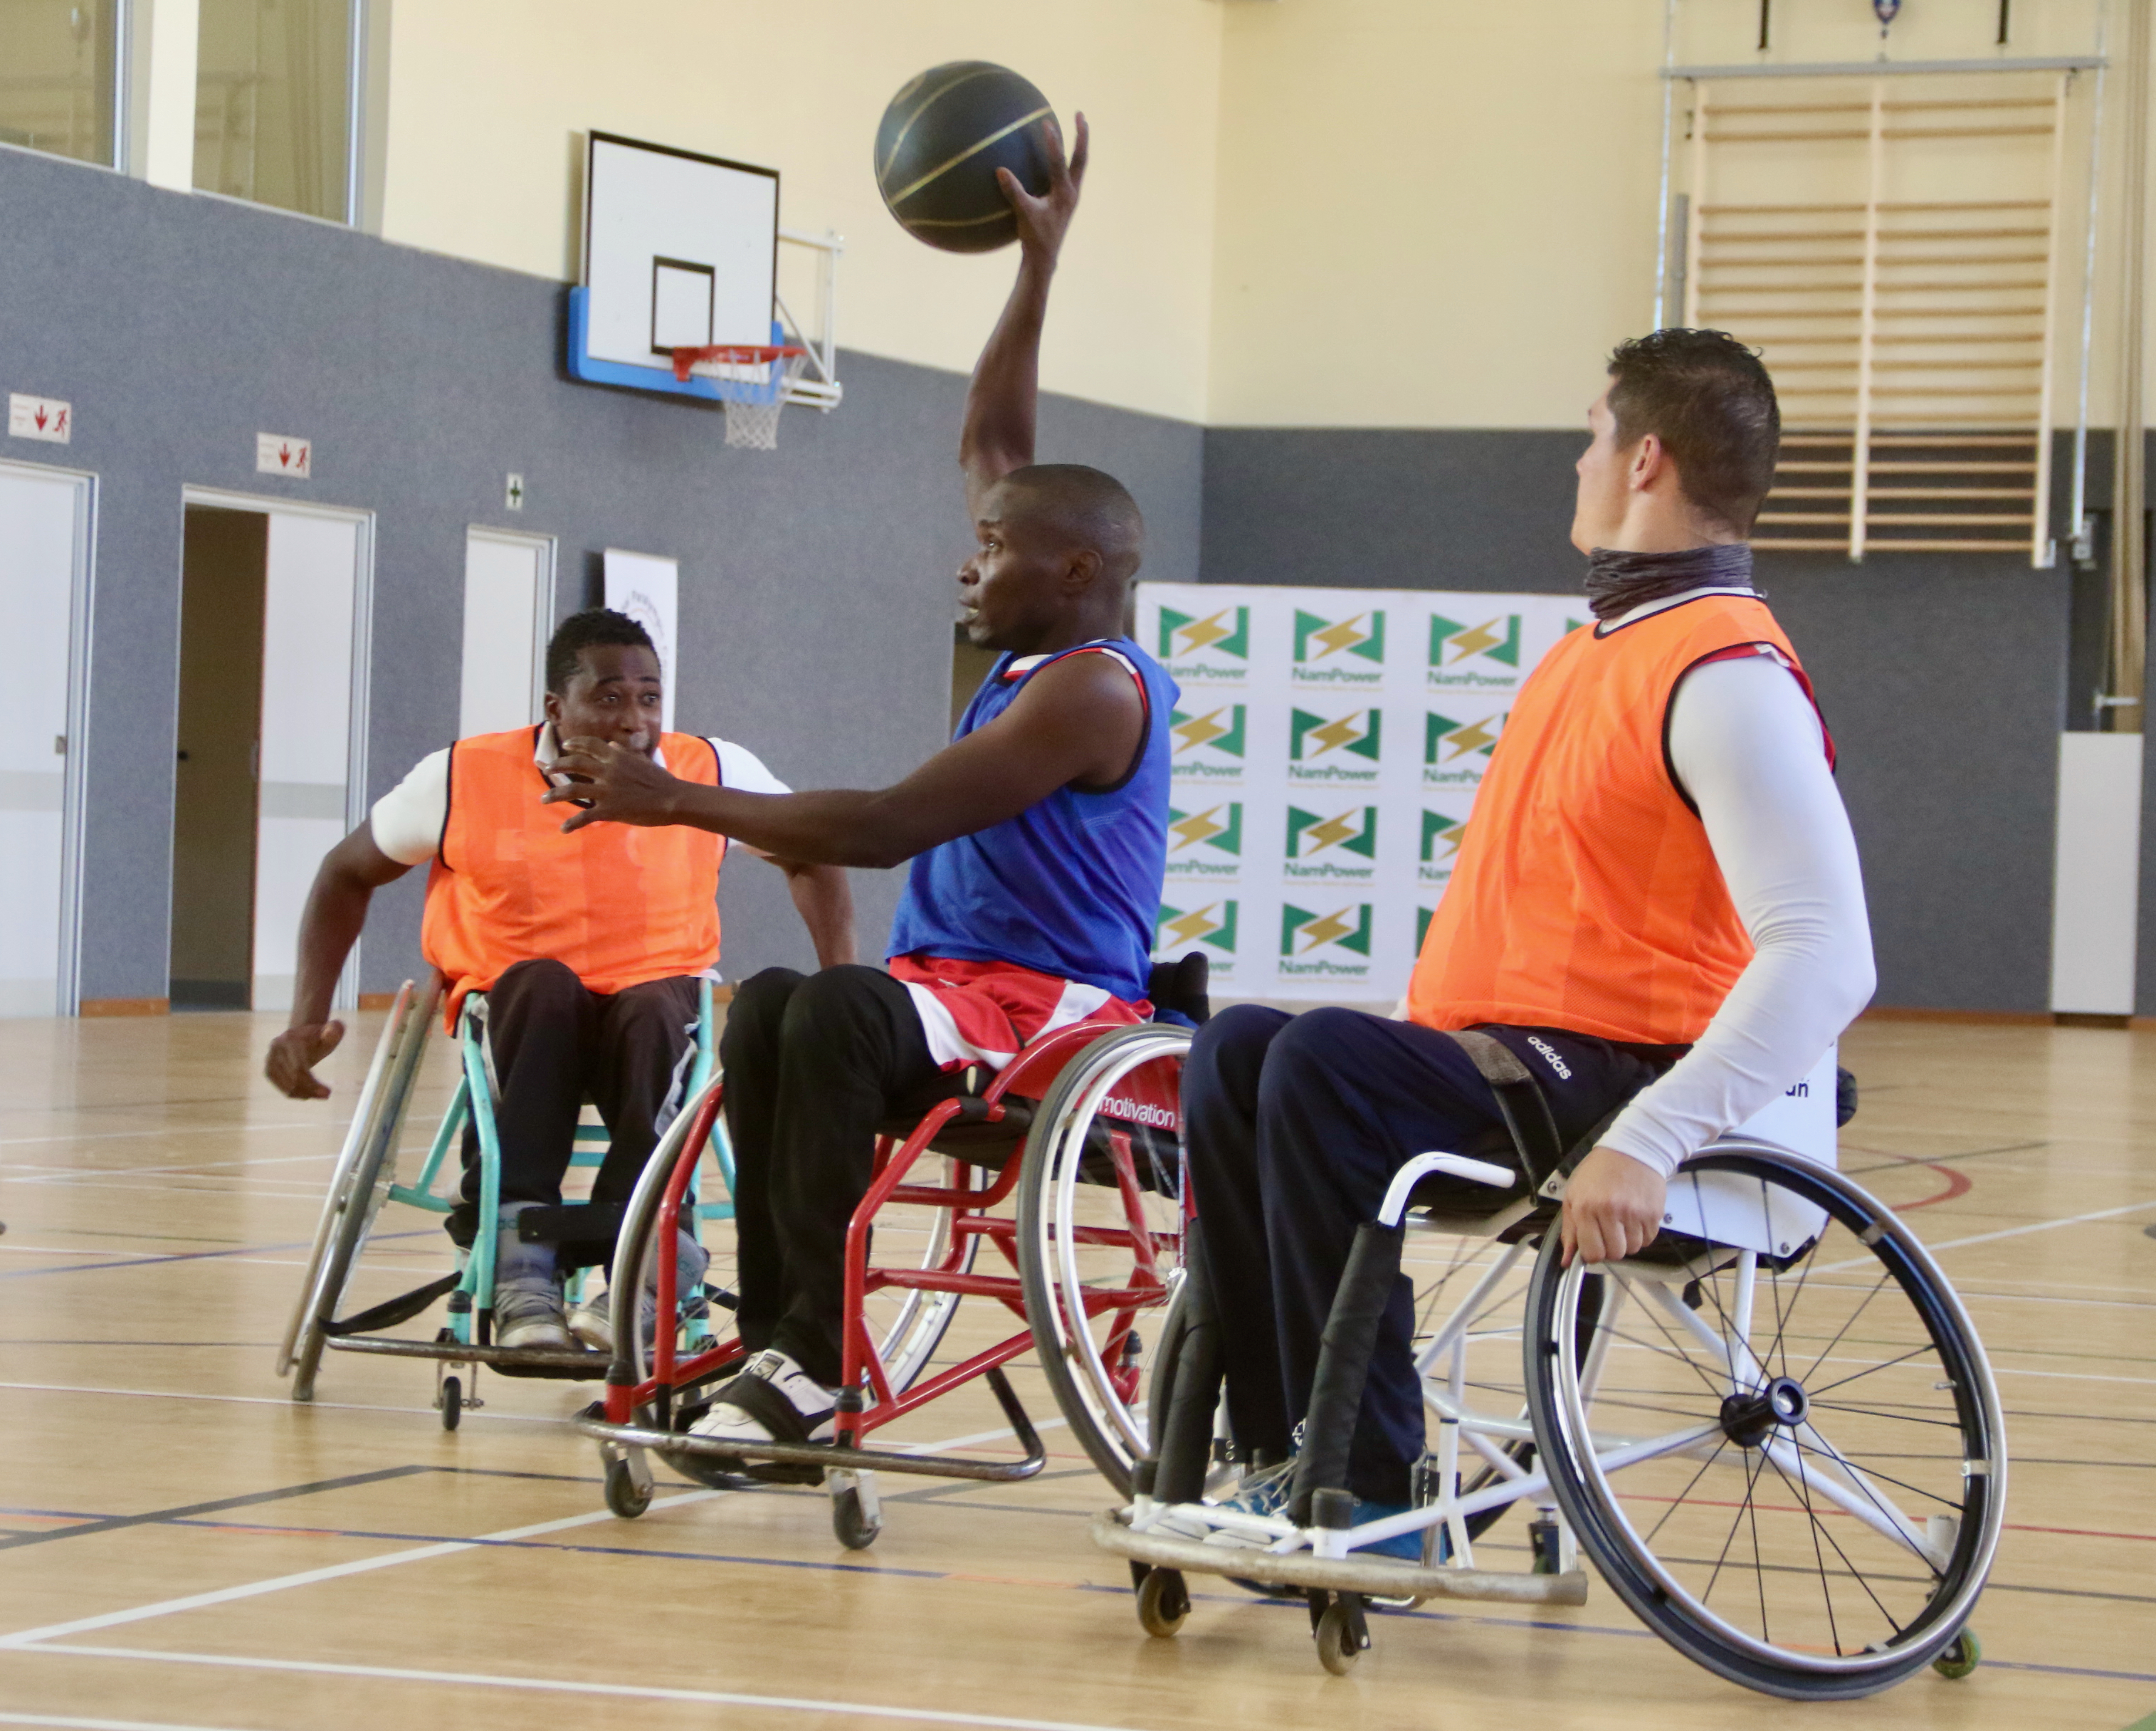 Wheelchair basketball team in need of funds